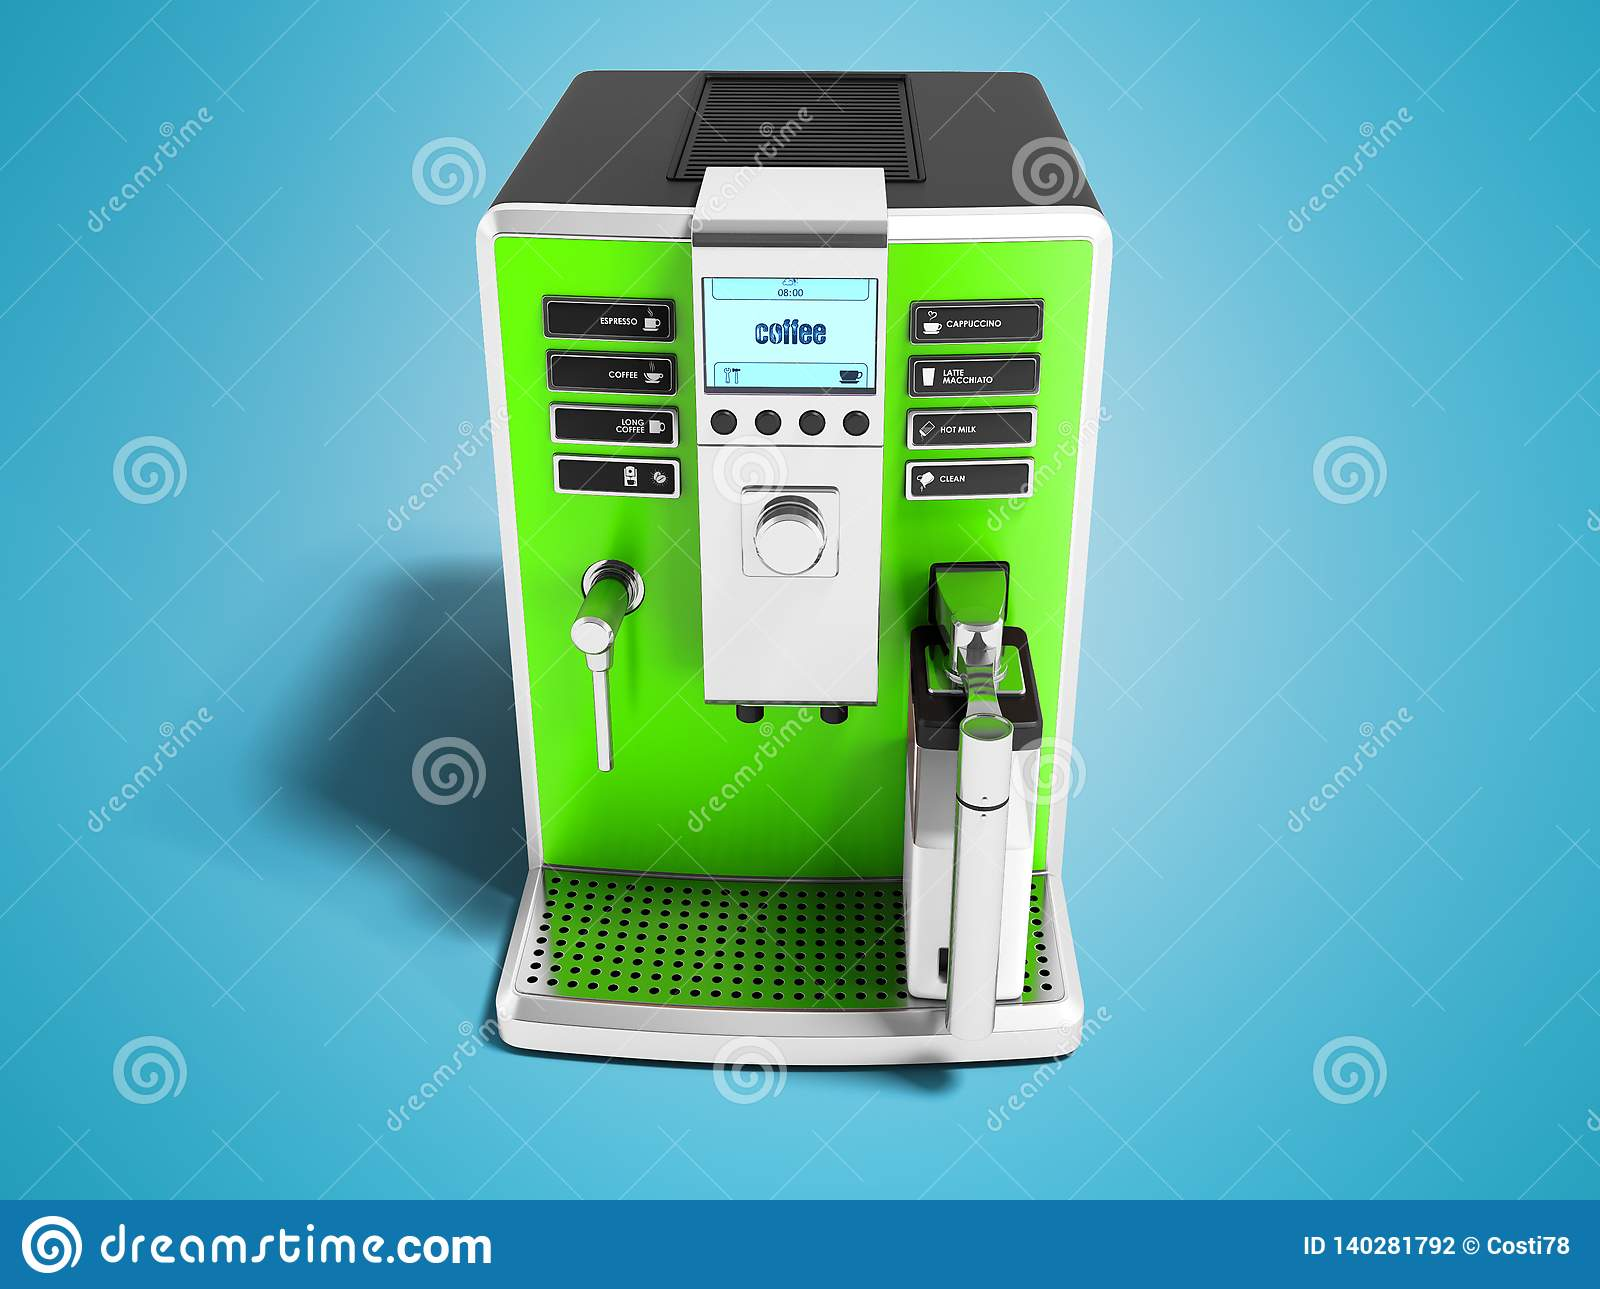 Dispense Mobili Moderne.Modern Green Coffee Machine With Milk Dispenser On One Cup